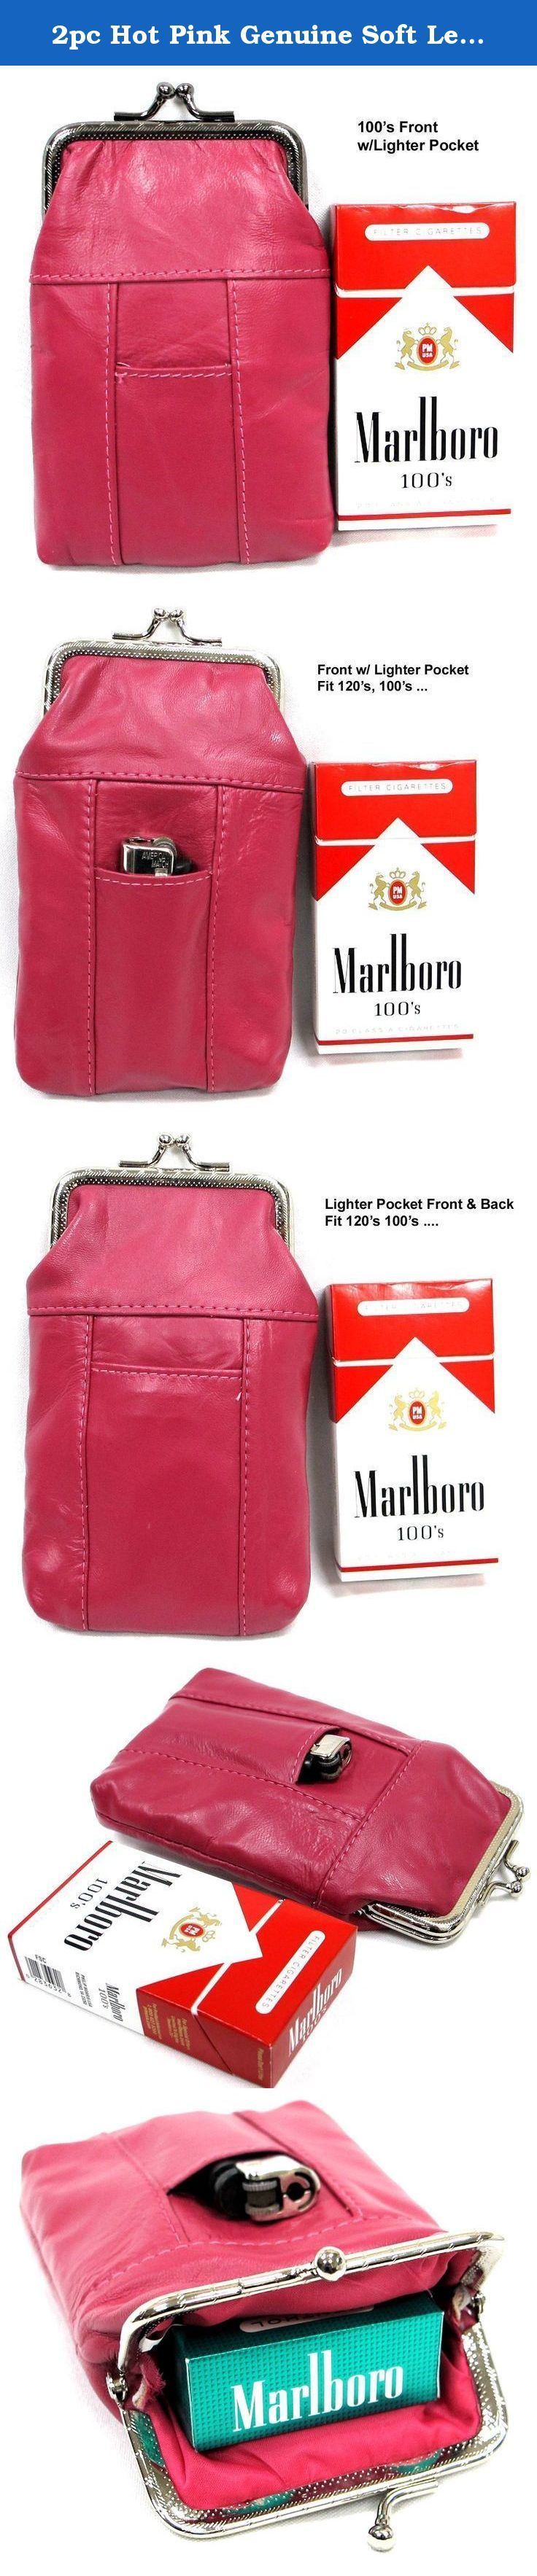 """2pc Hot Pink Genuine Soft Leather Cigarette Case with Lighter Pocket 100s + 120s 2pc for $10.99. 2pc Set HOT PINK Genuine Soft Leather Cigarette Case Super Soft and Light Weighted, One Fit 100s, One Fit 120s 1. Snapped Top Closure; 2. Lighter Pockets; 3. Inside full nylon lining; 4. Get 2pc at Price of One; 5. Measure: 5.5"""" x 4"""" x 0.5""""; Weight 1.5-OZ."""